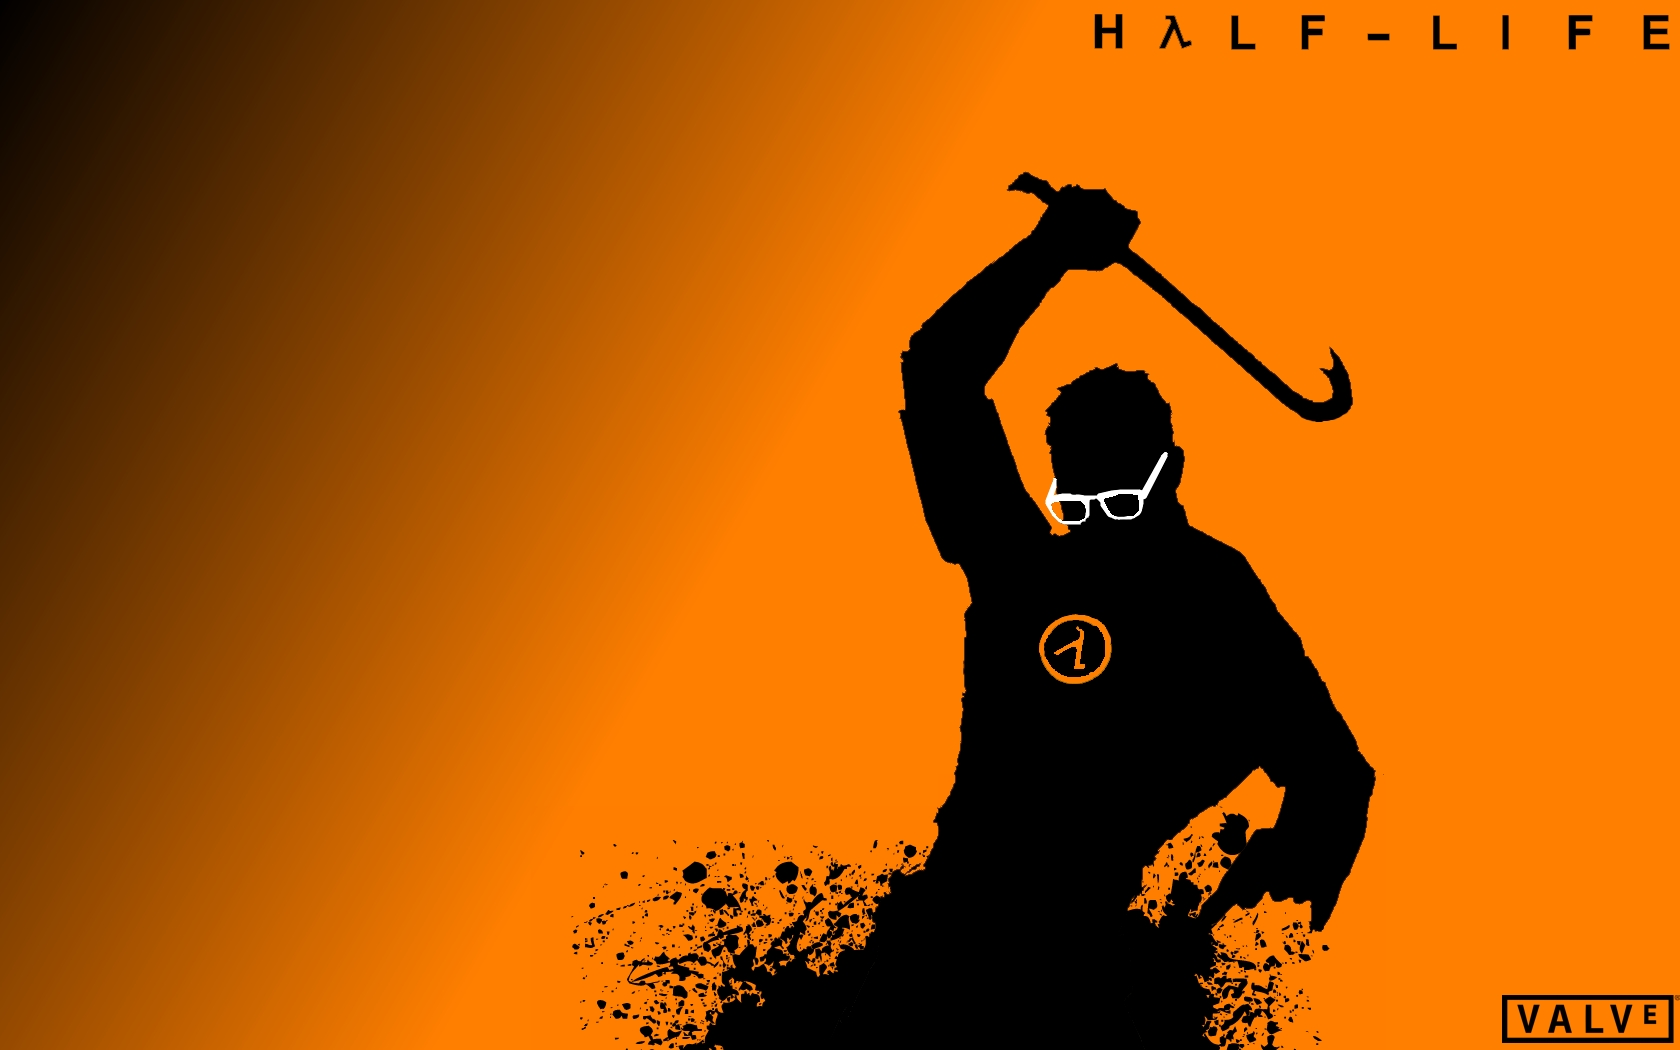 ... HD Wallpaper; Half Life Wallpaper